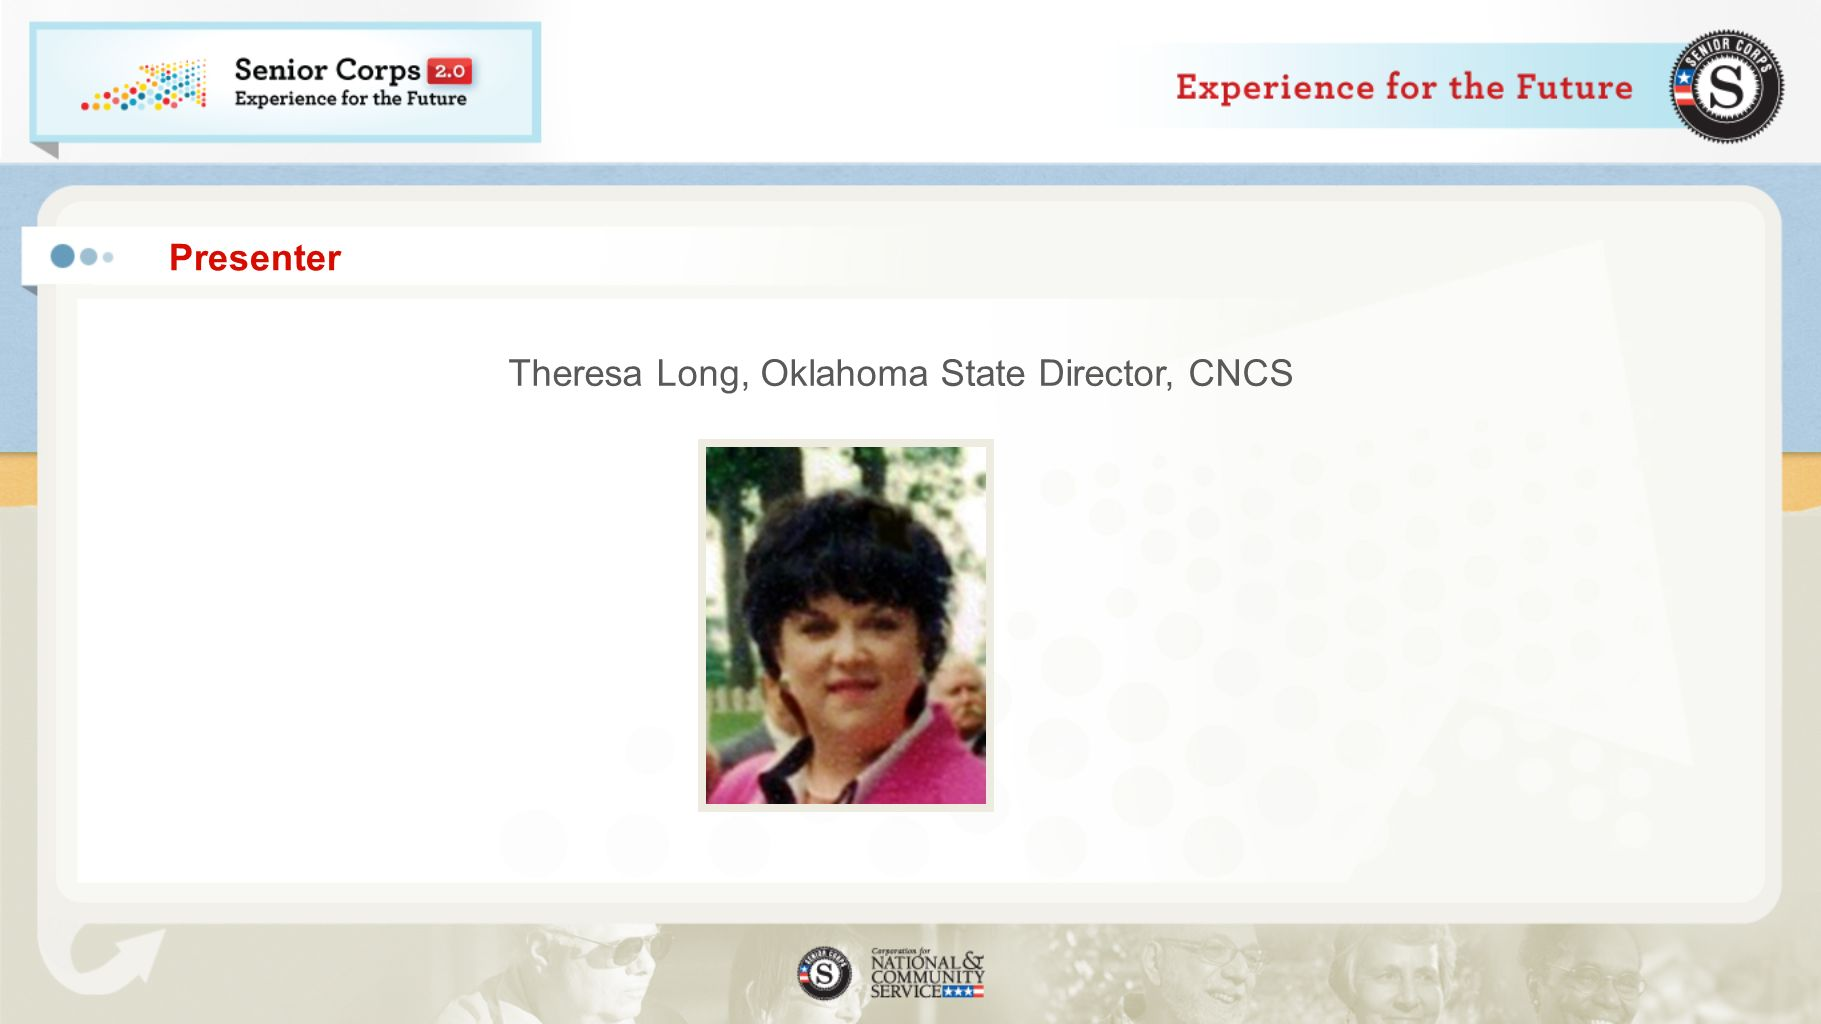 Presenter Theresa Long, Oklahoma State Director, CNCS